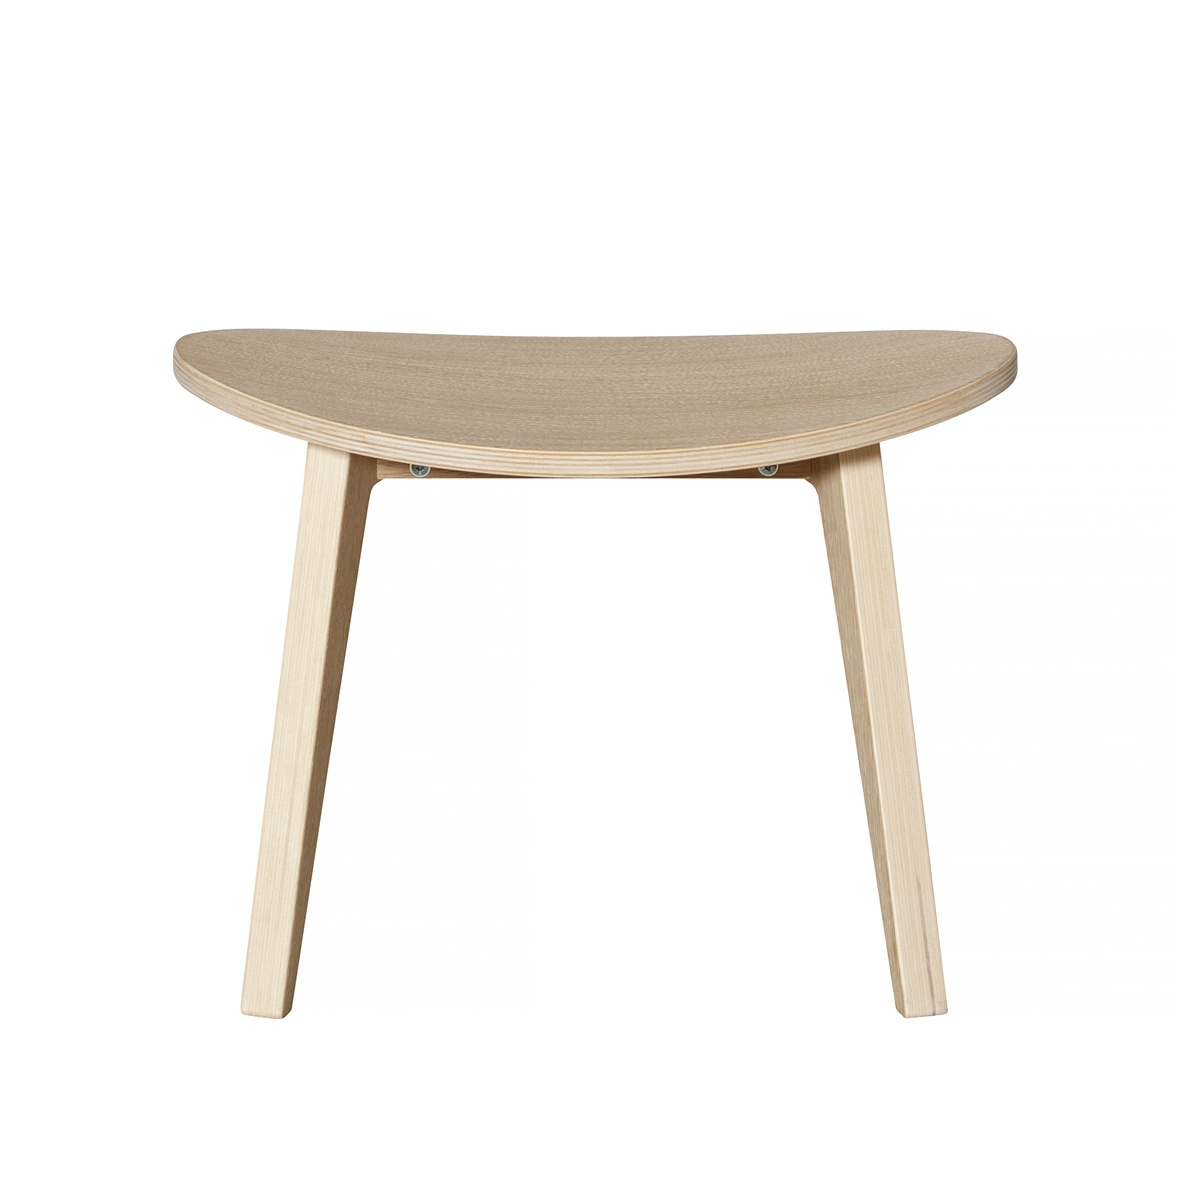 Pall PingPong Wood collection ek, Oliver Furniture